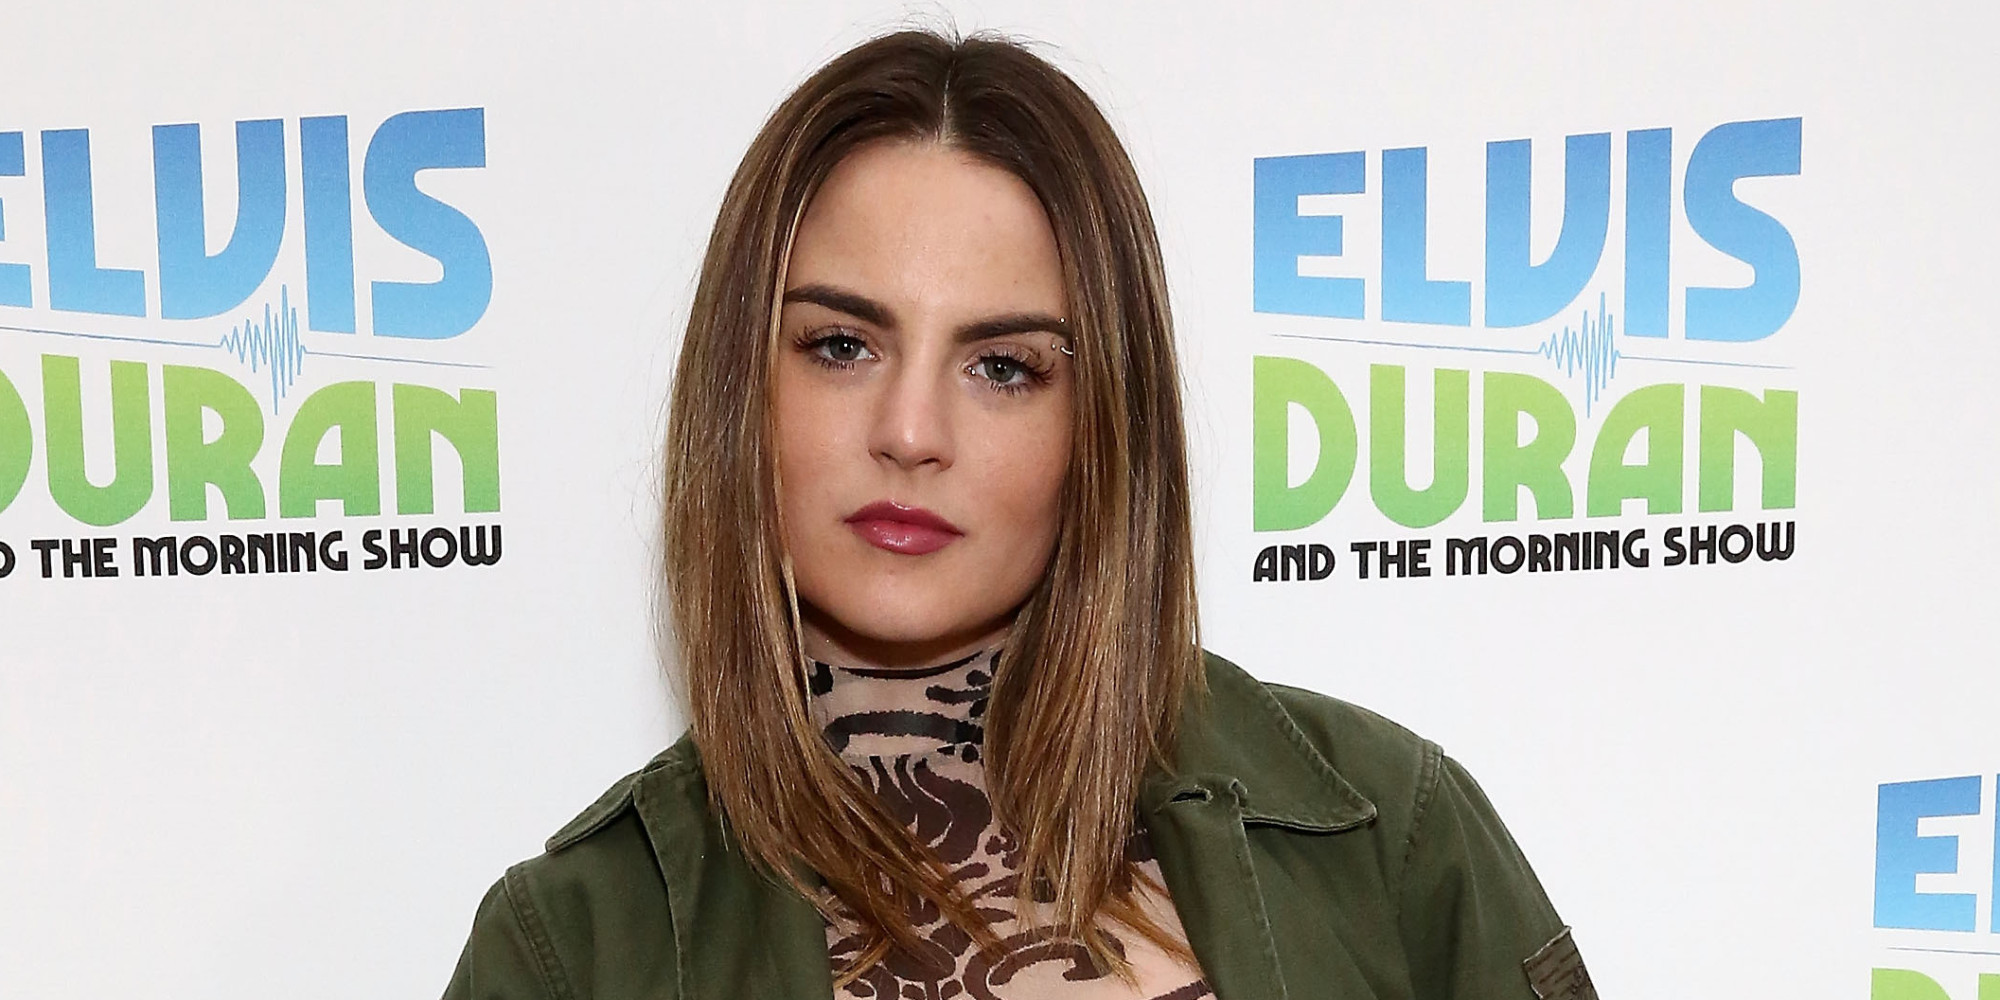 jojo pens essay for motto on body image and acceptance